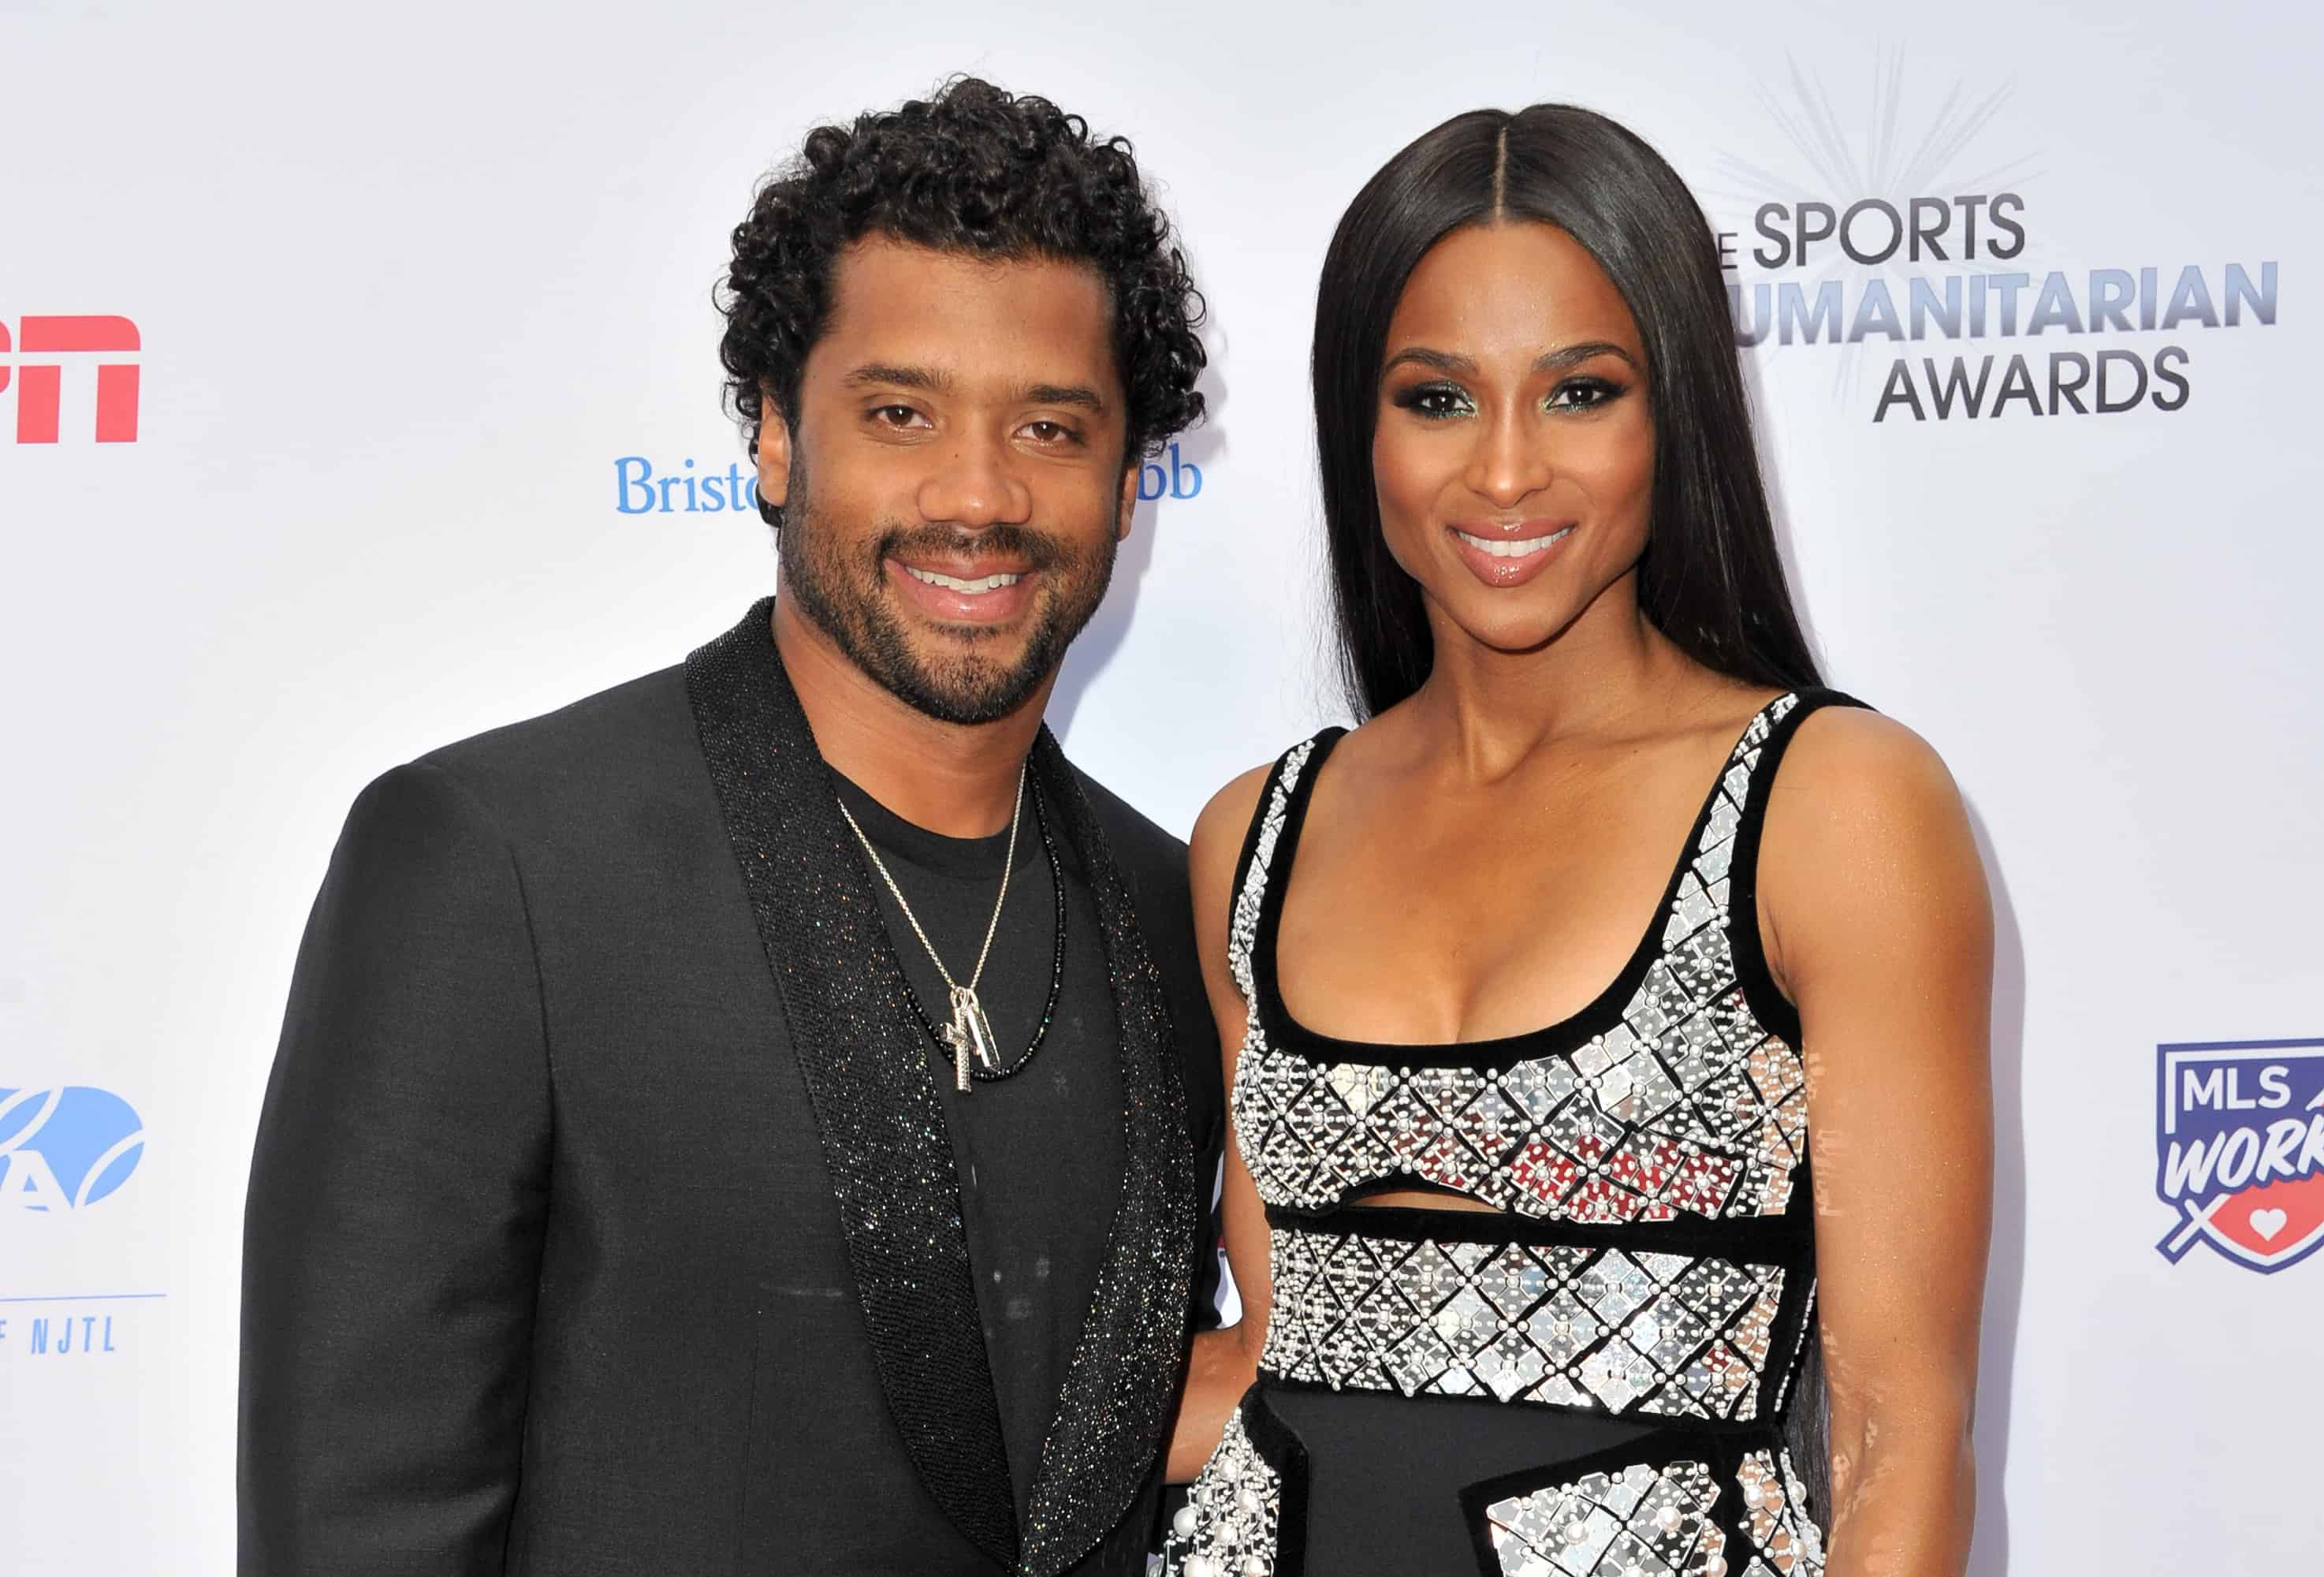 Ciara and Russell Wilson are now among the new owners of the Seattle Sounders FC soccer team along with 10 other families.